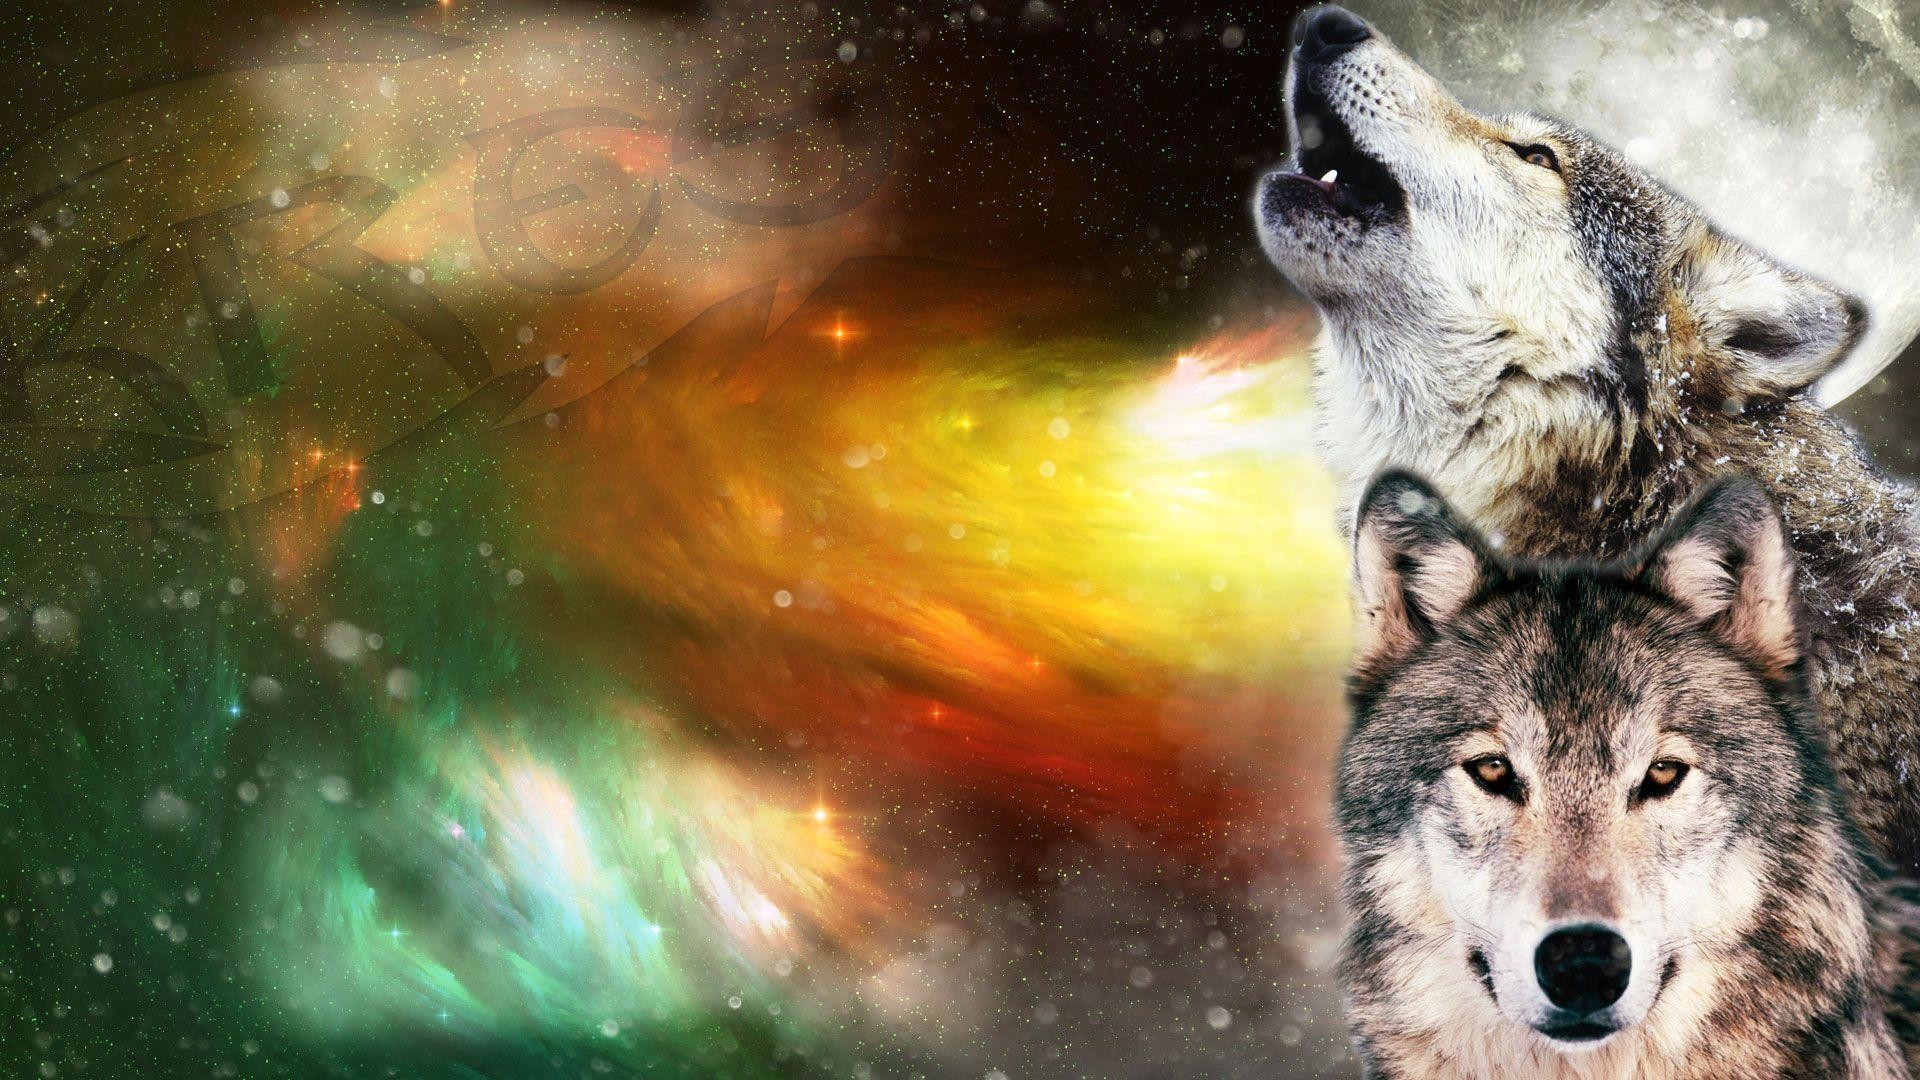 Wolf Howling at The Moon Wallpaper ·①